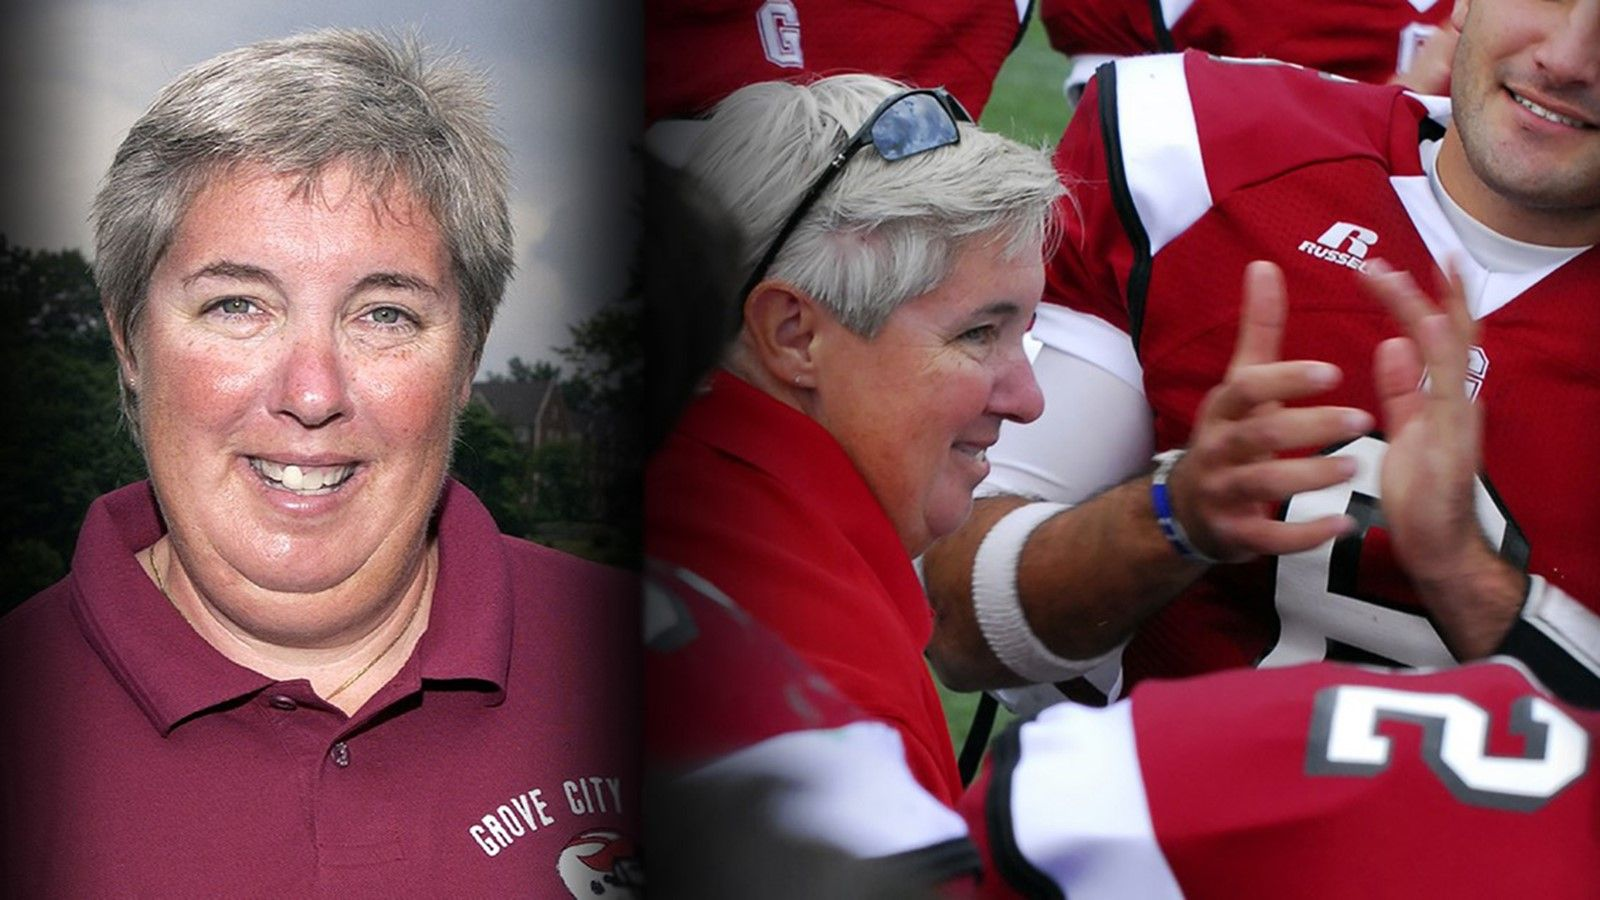 Grove City's Emigh stepping down as head athletic trainer due to medical reasons